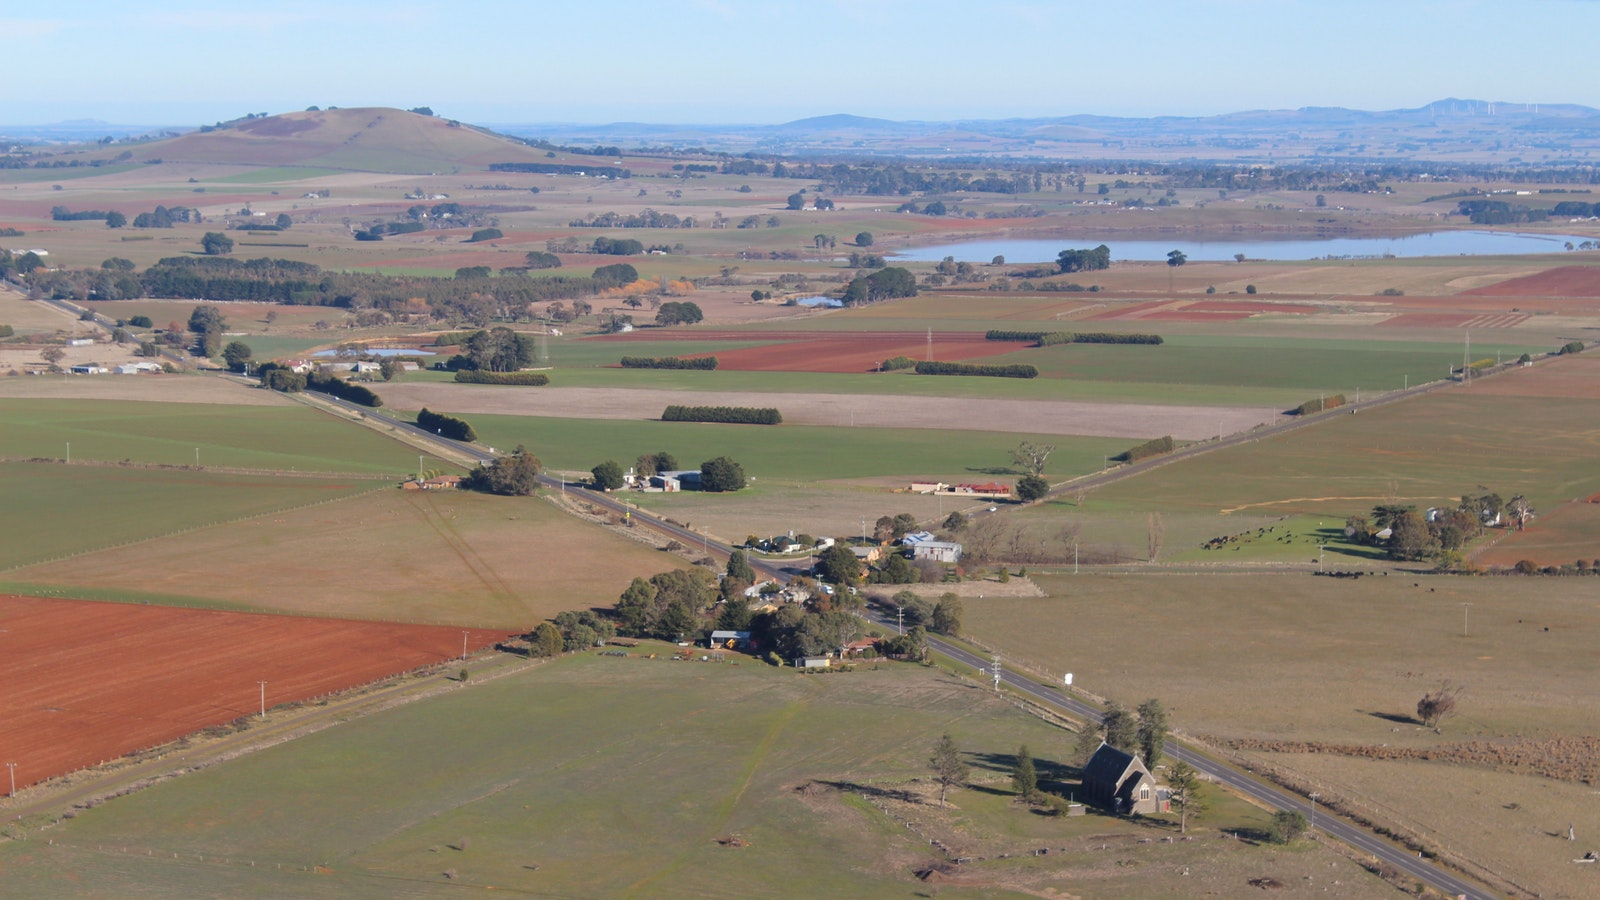 Daylesford from a hot air balloon